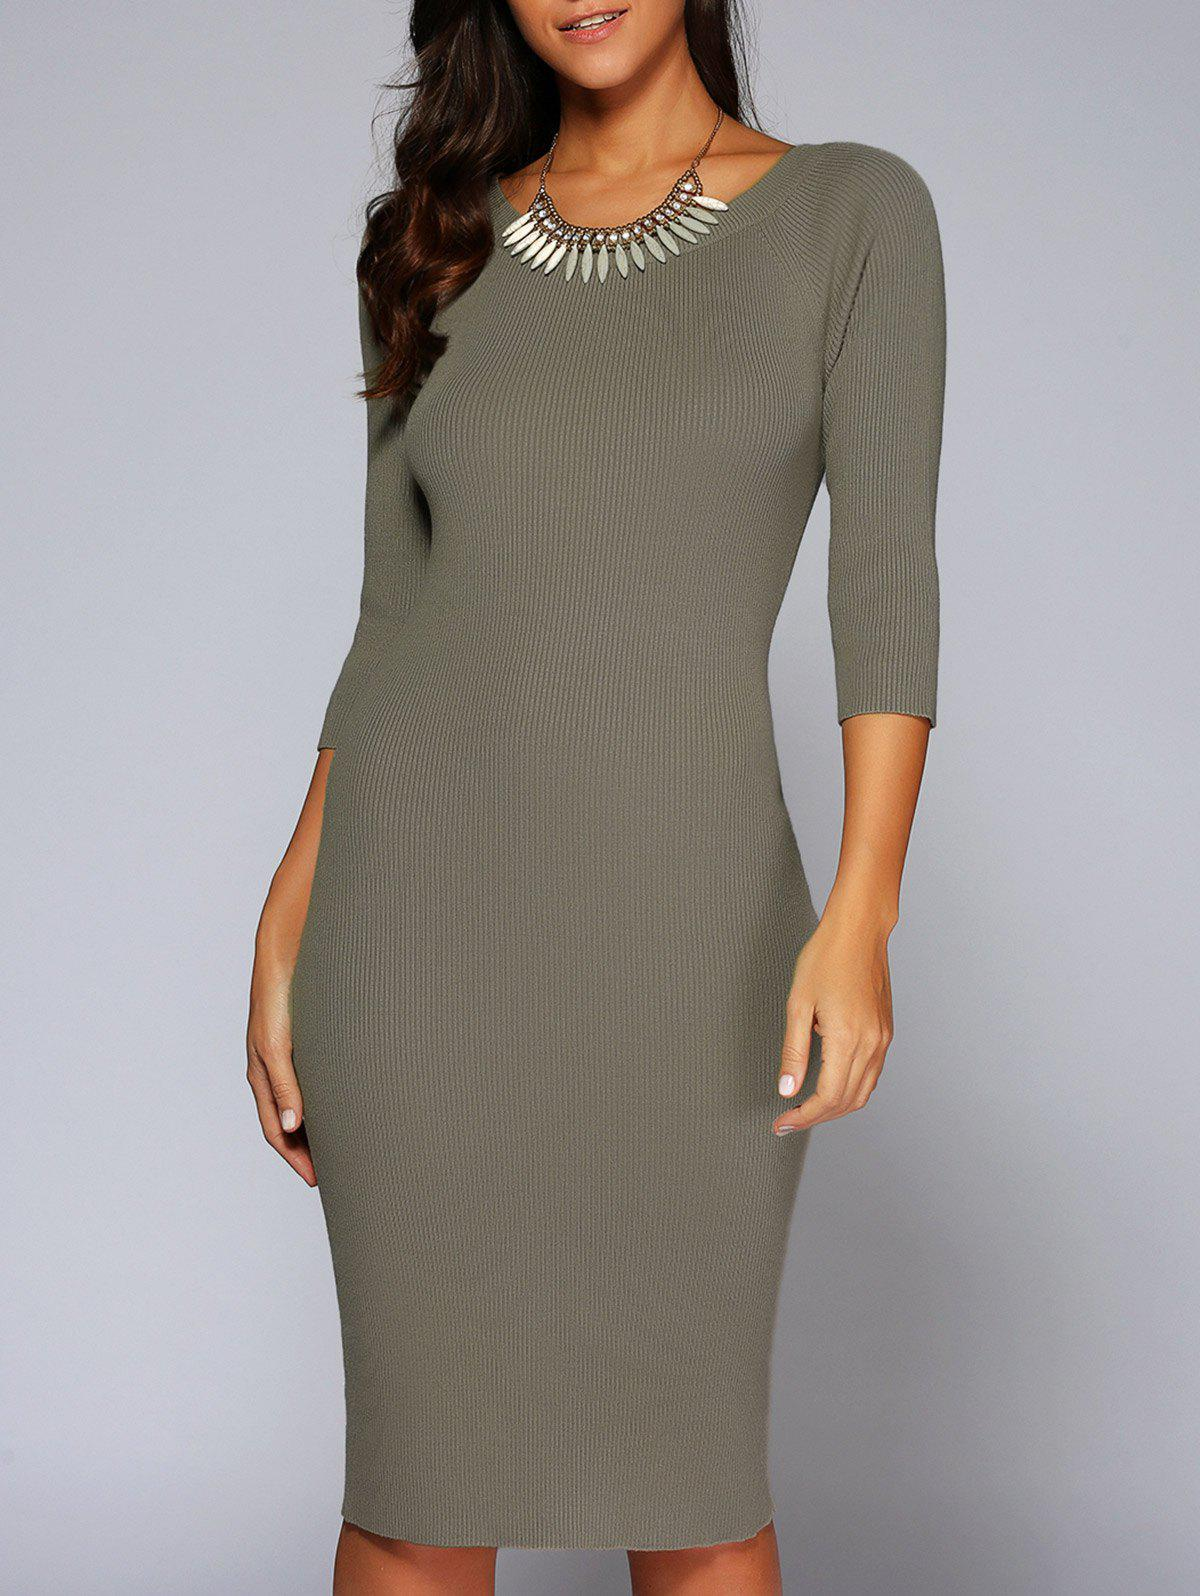 Best Concise 3/4 Sleeve Close-Fitting Knit Dress